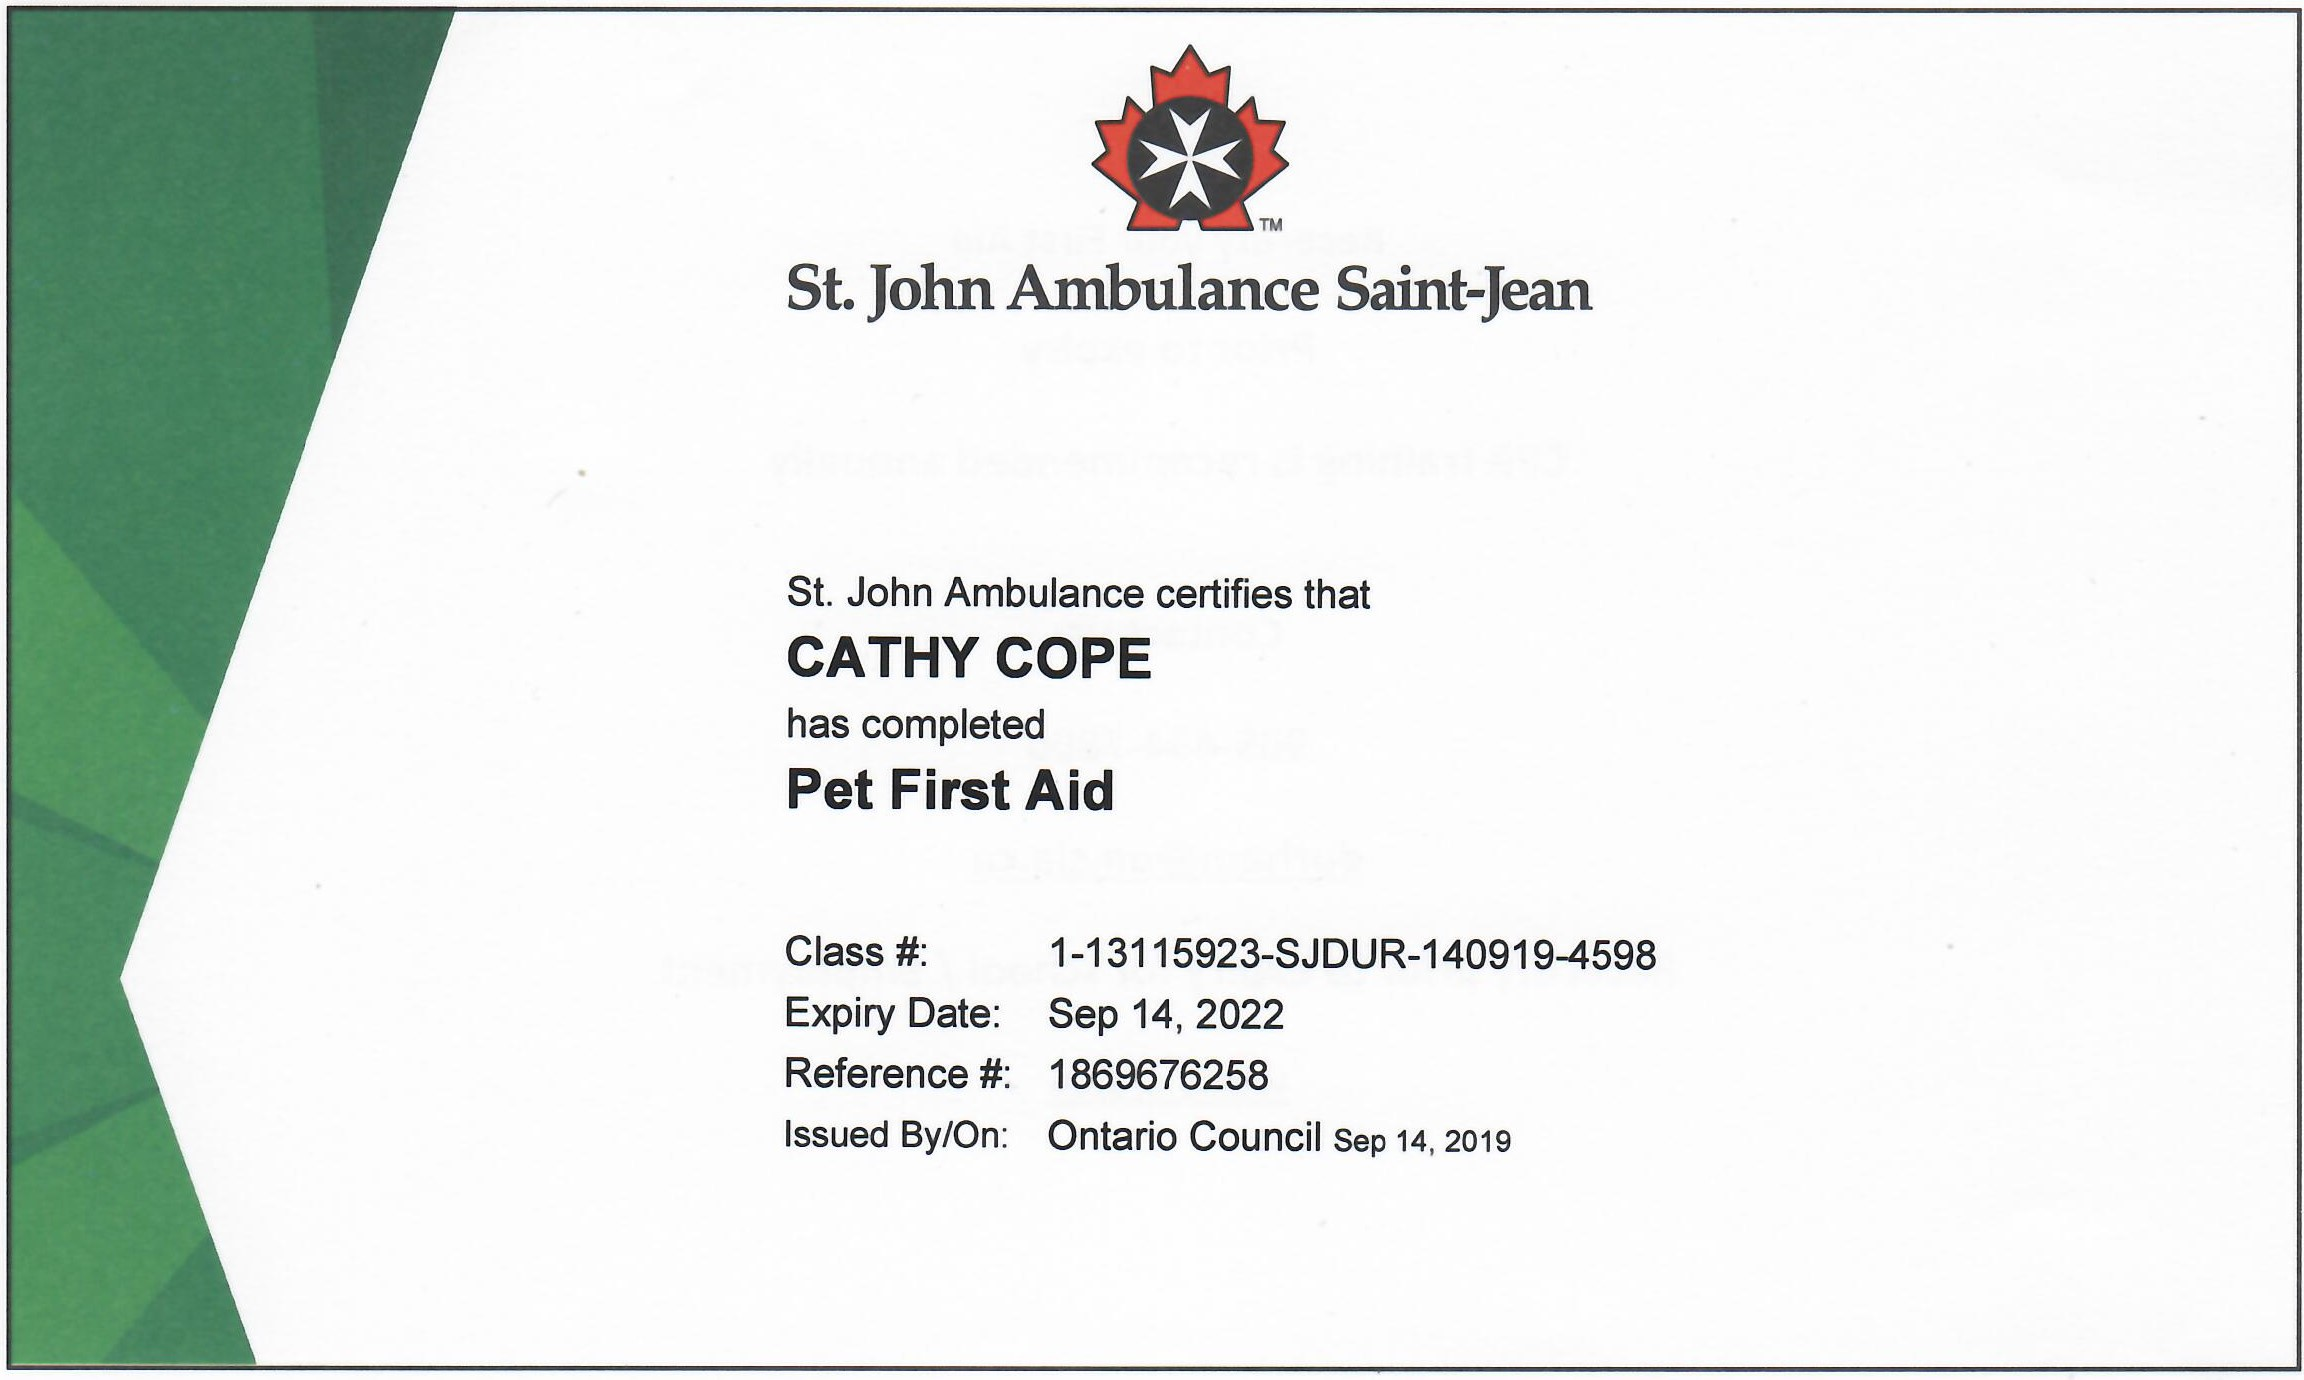 2019-09-14 Pet First Aid